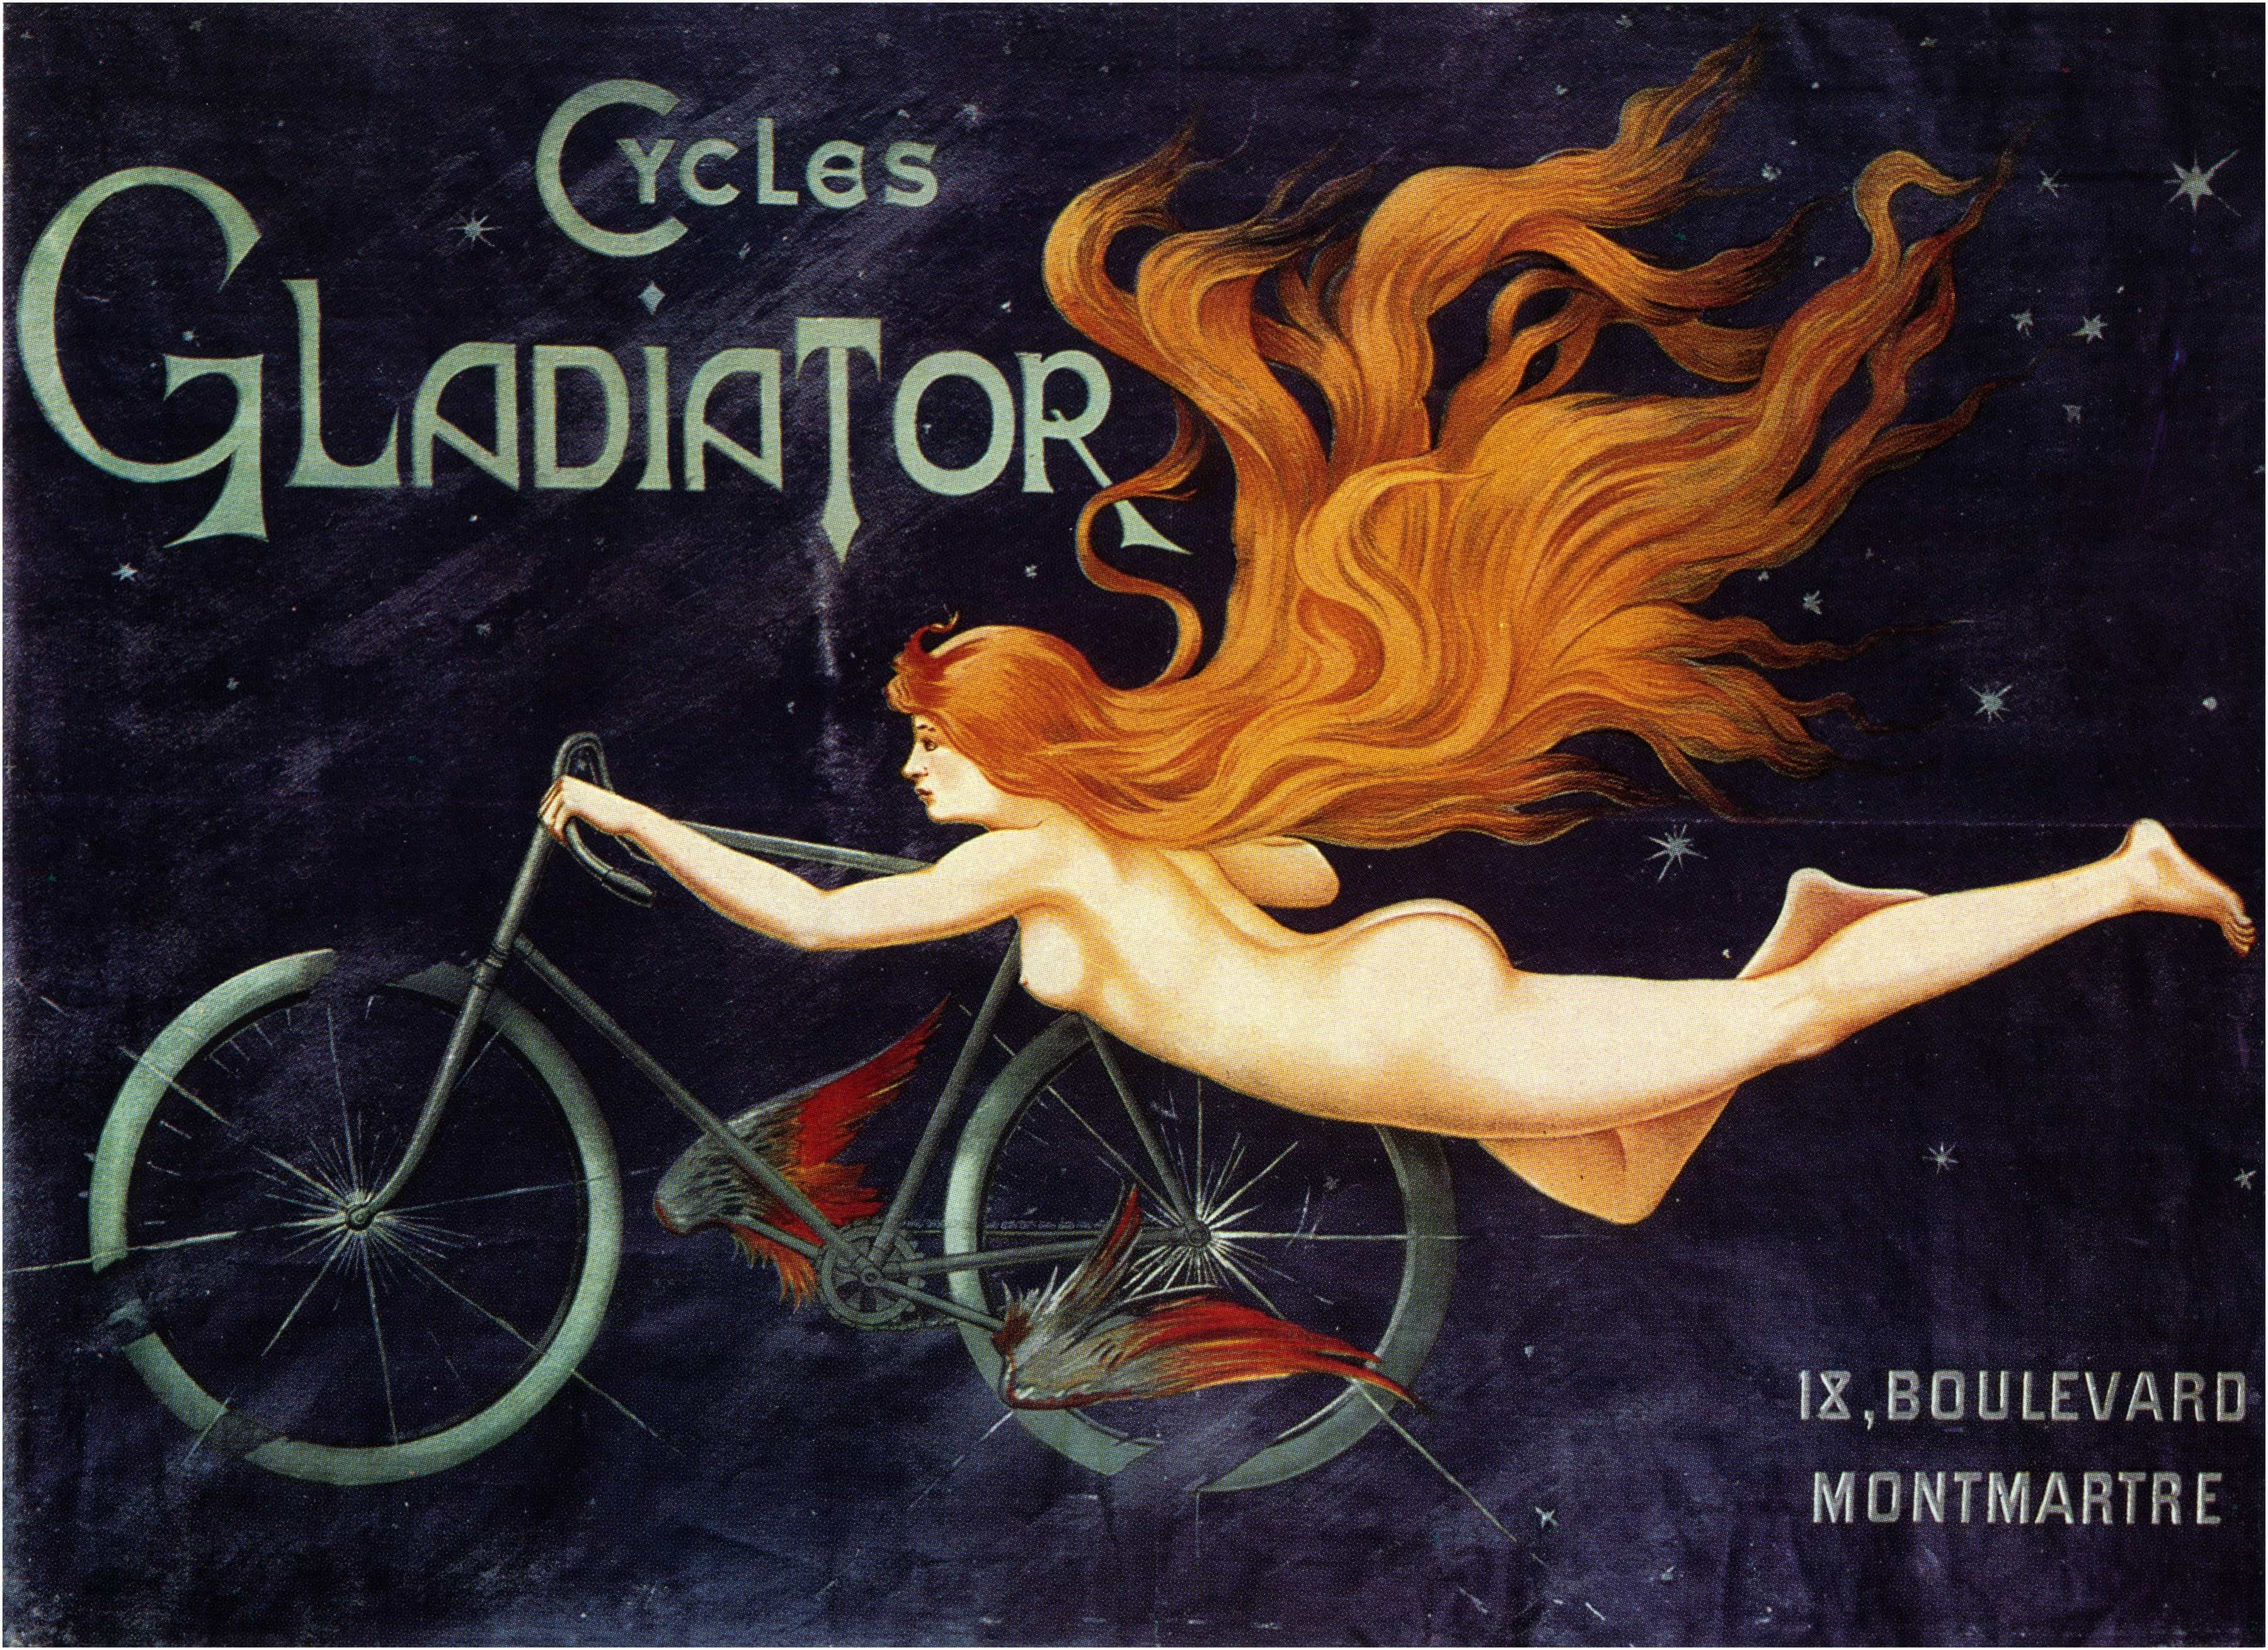 Vintage French Posters: Cycles Gladiator 1895